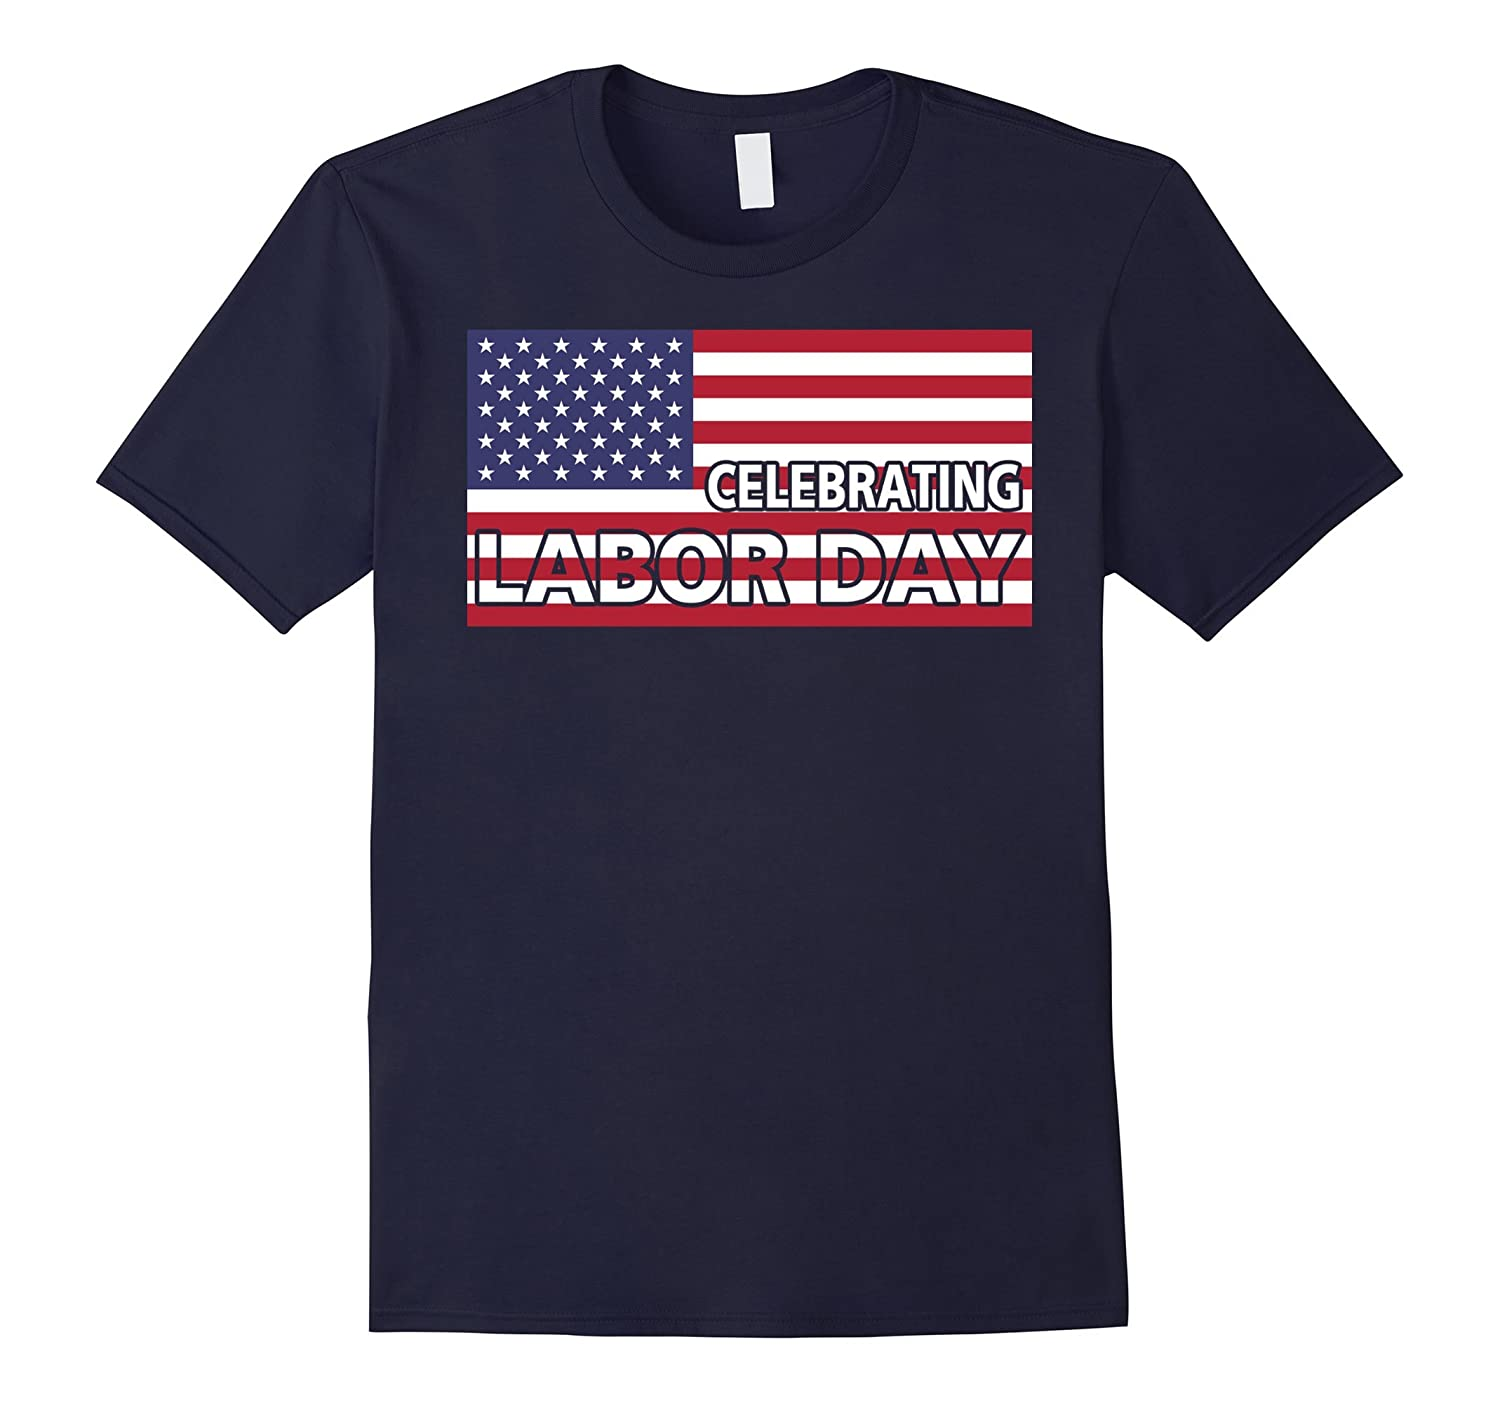 Celebrating Labor Day Flag American T-Shirt-BN